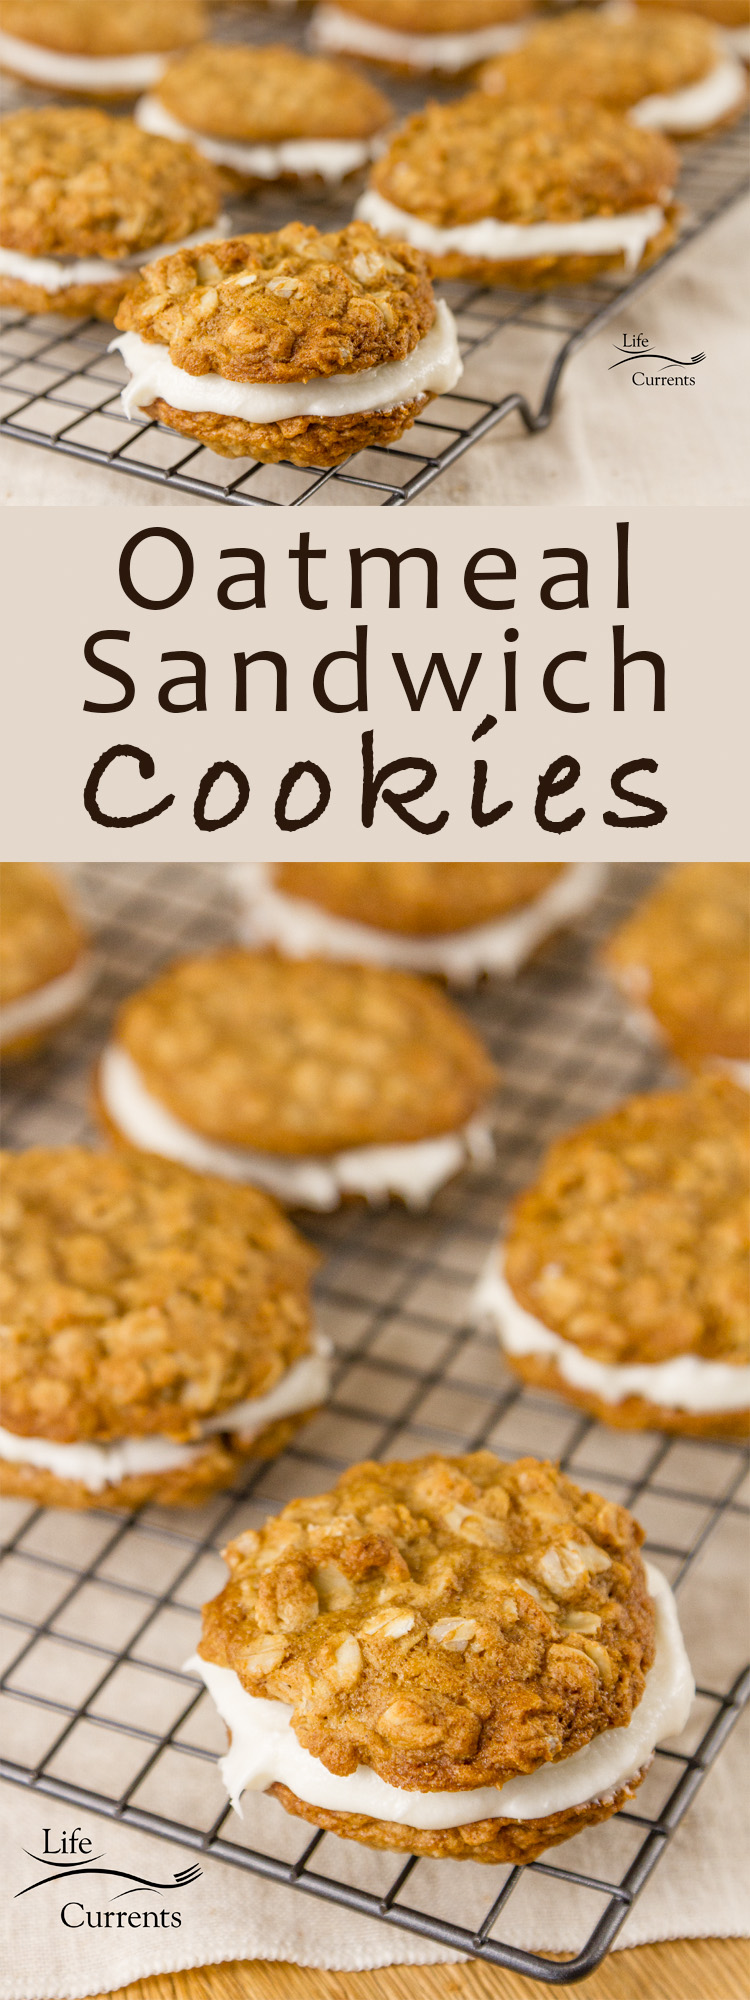 Oatmeal Sandwich Cookies - Homey comforting oatmeal cookies wrapped around sweet creamy white filling. #cookies #oatmeal #cookieexchange #oatmealcookie It's like being a kid again.